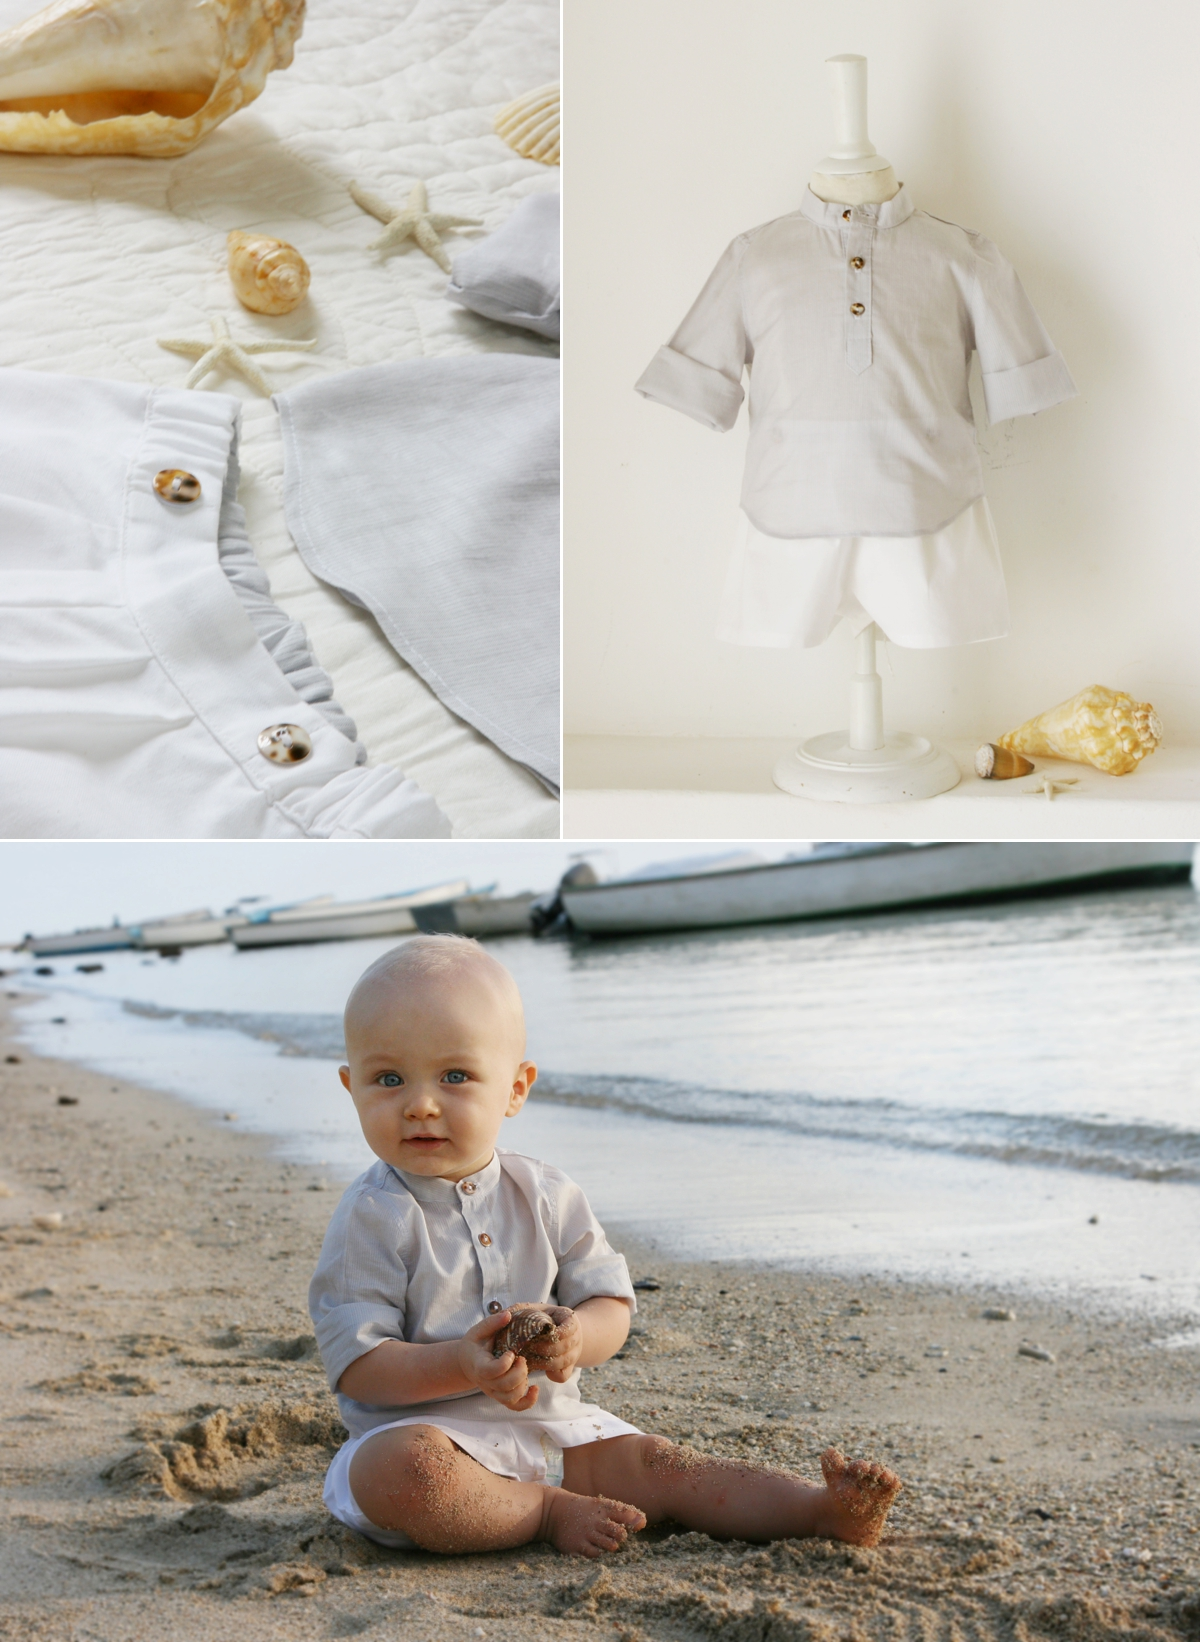 657c84031403 beach baby boy outfit little eglantine - Stylish Outfits for Children at  Weddings by Little Eglantine. ""